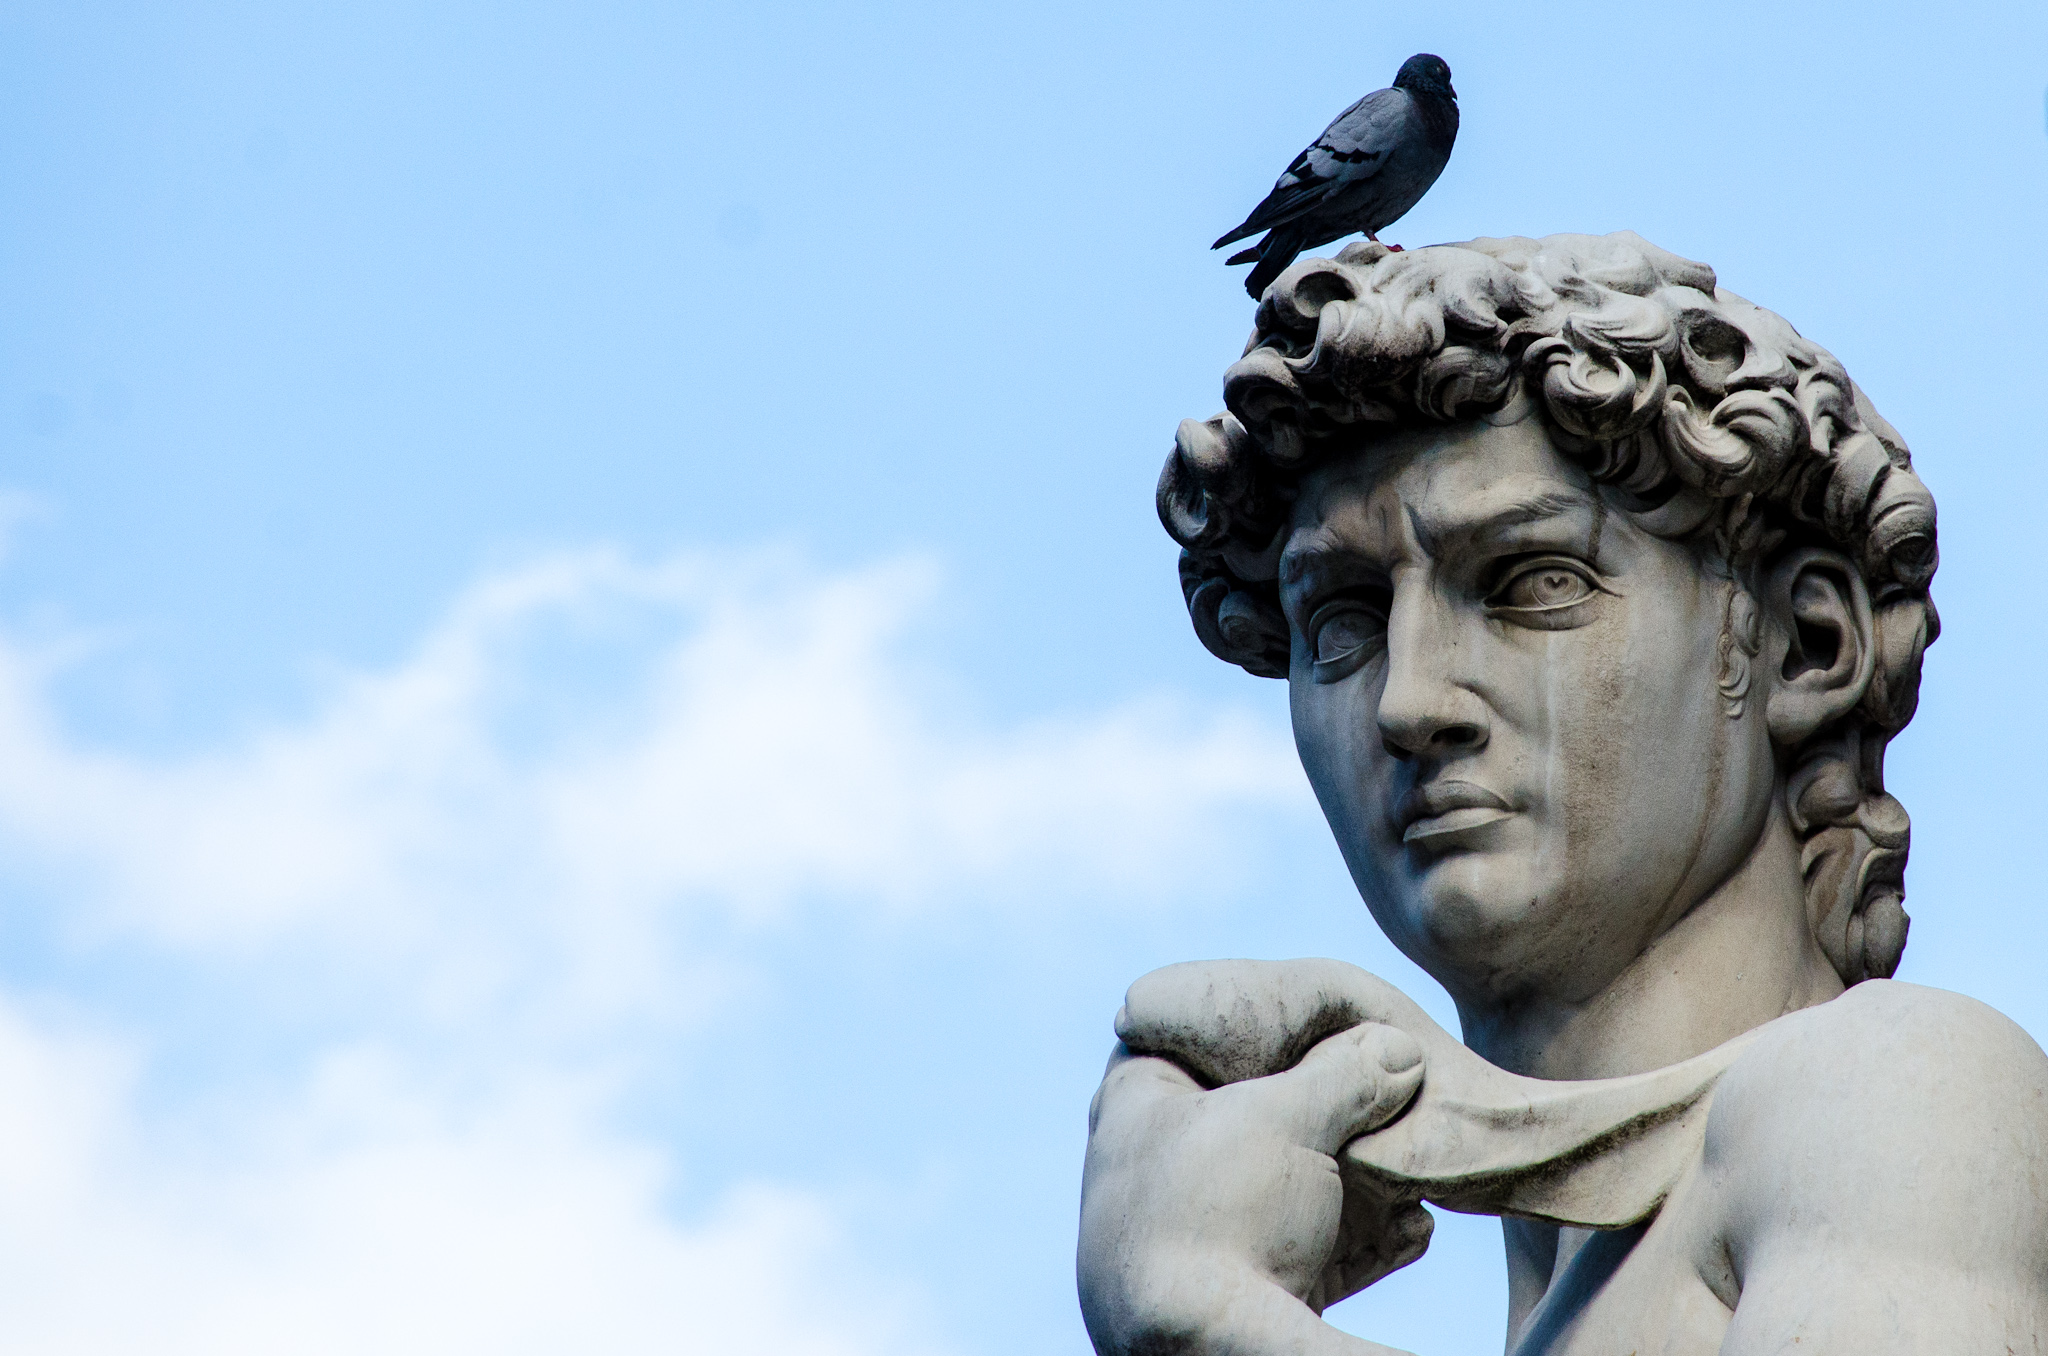 Or, like this pigeon, you can just go on the nearest statue